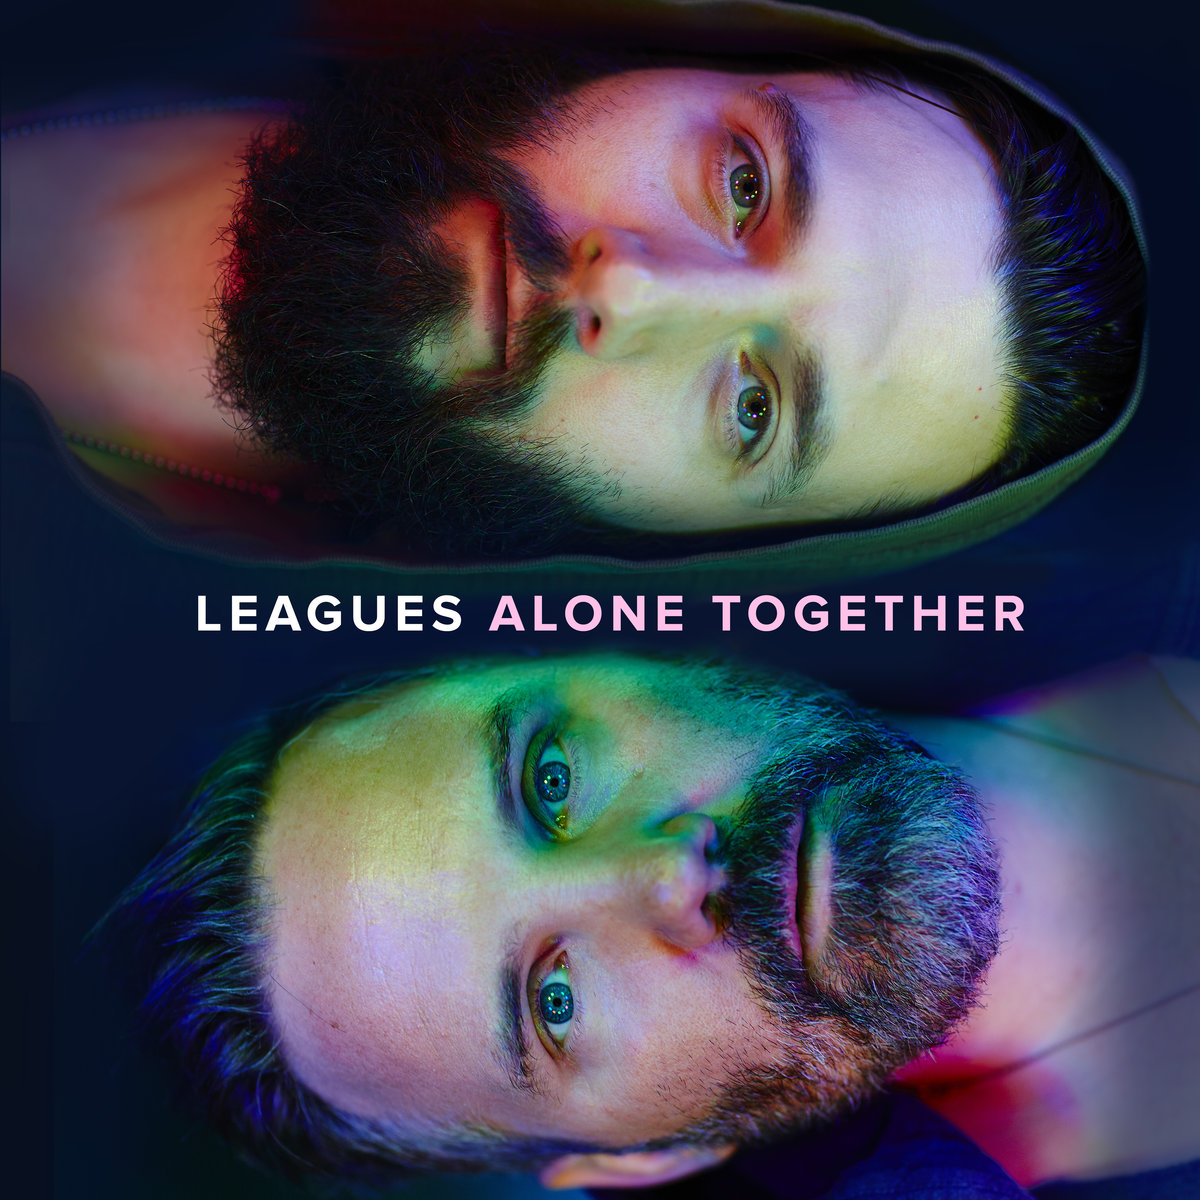 Alone Together Leagues